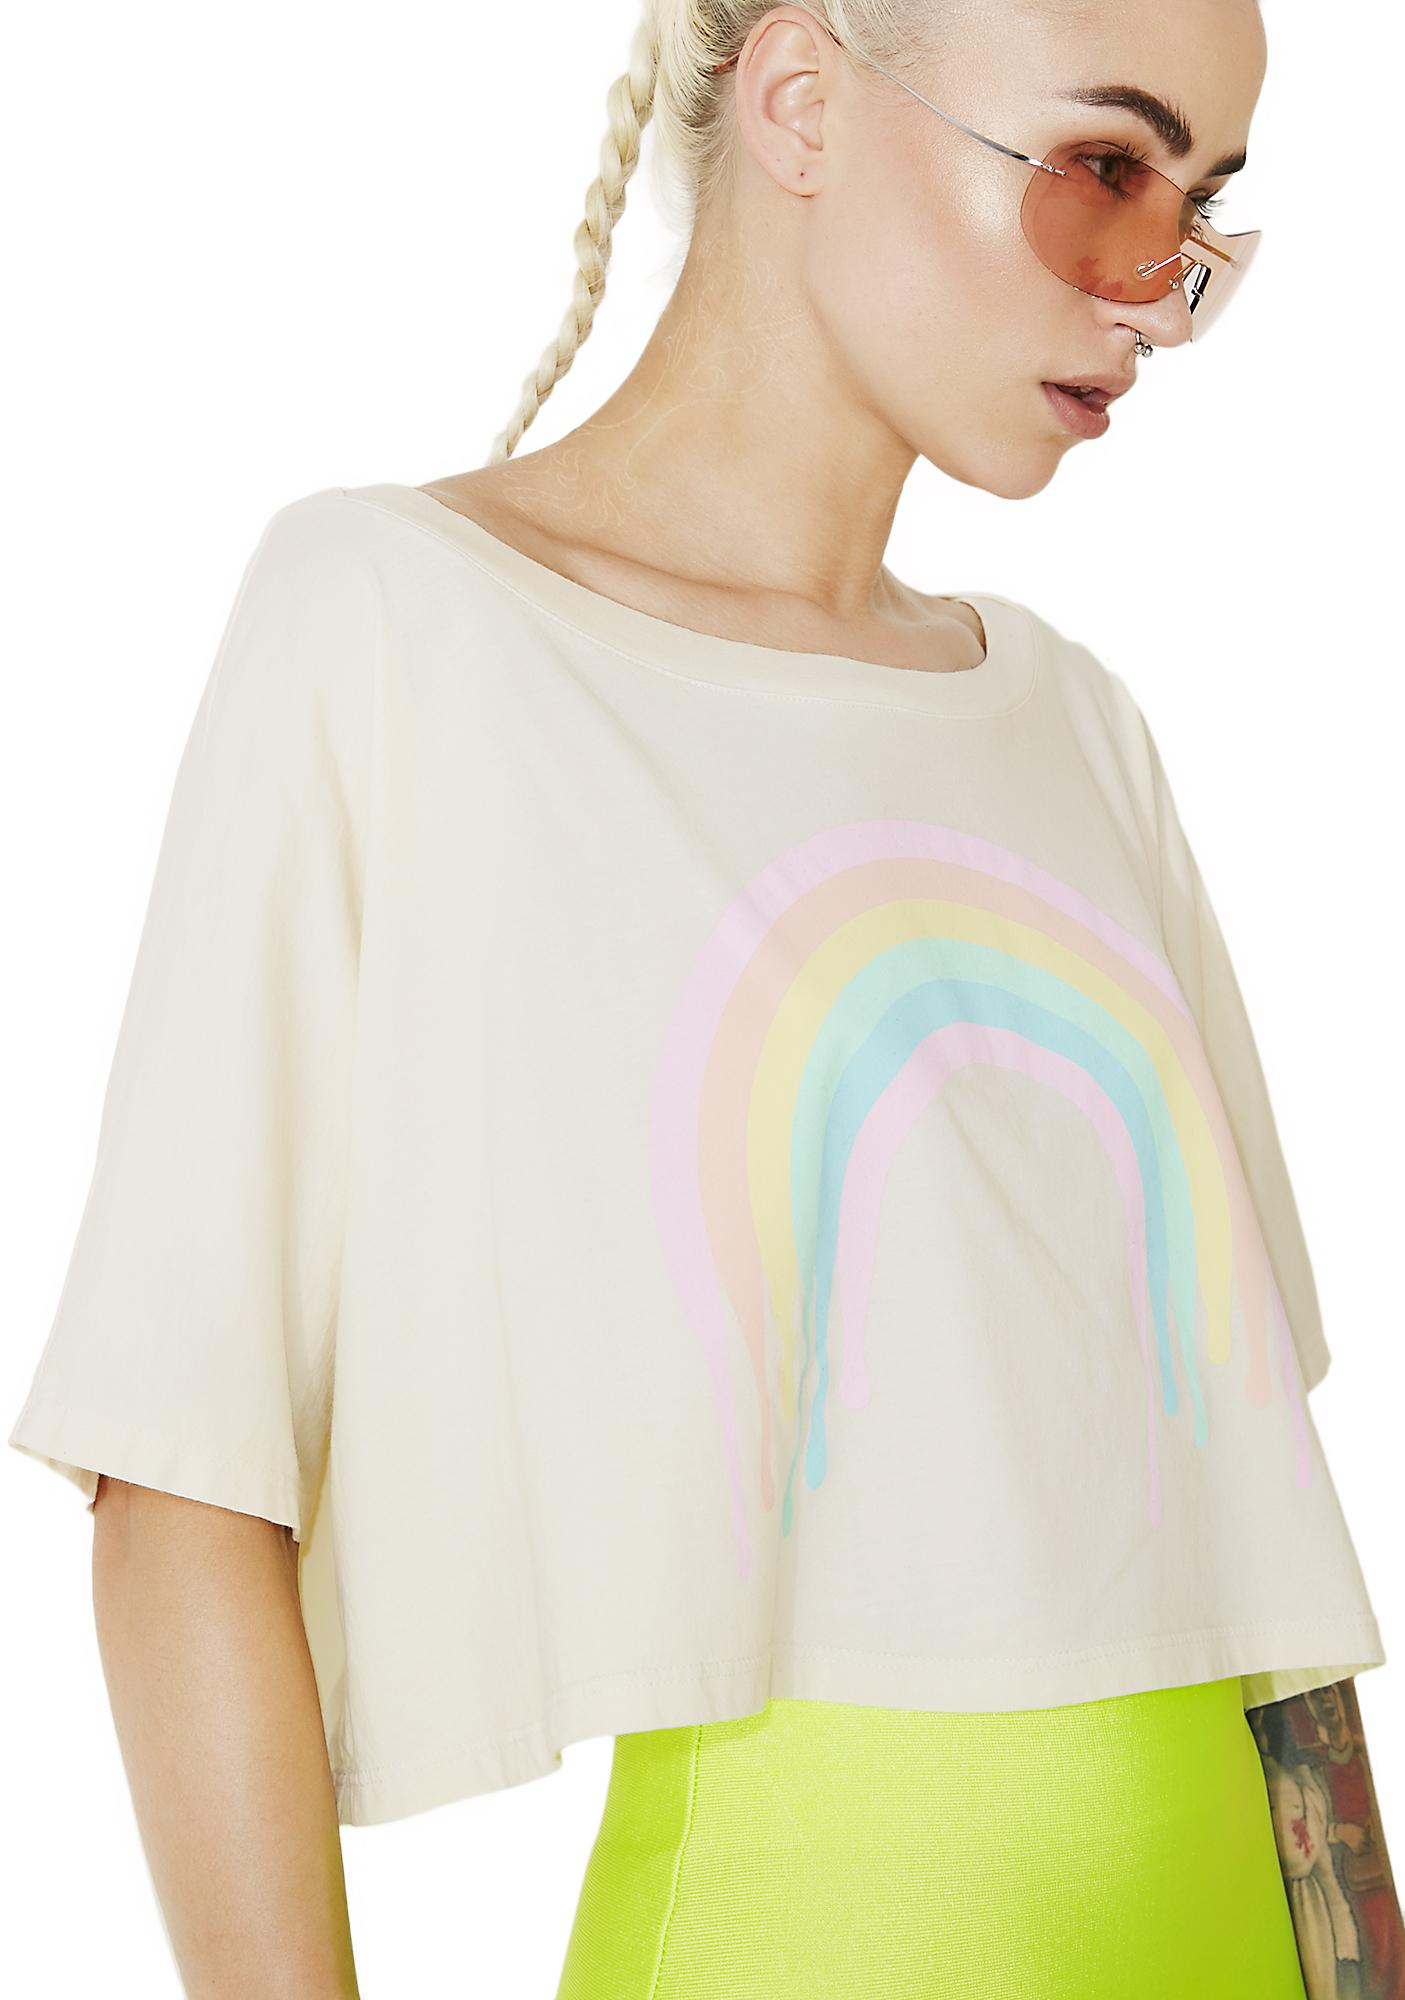 MeYouVersusLife Dripping Rainbow Crop